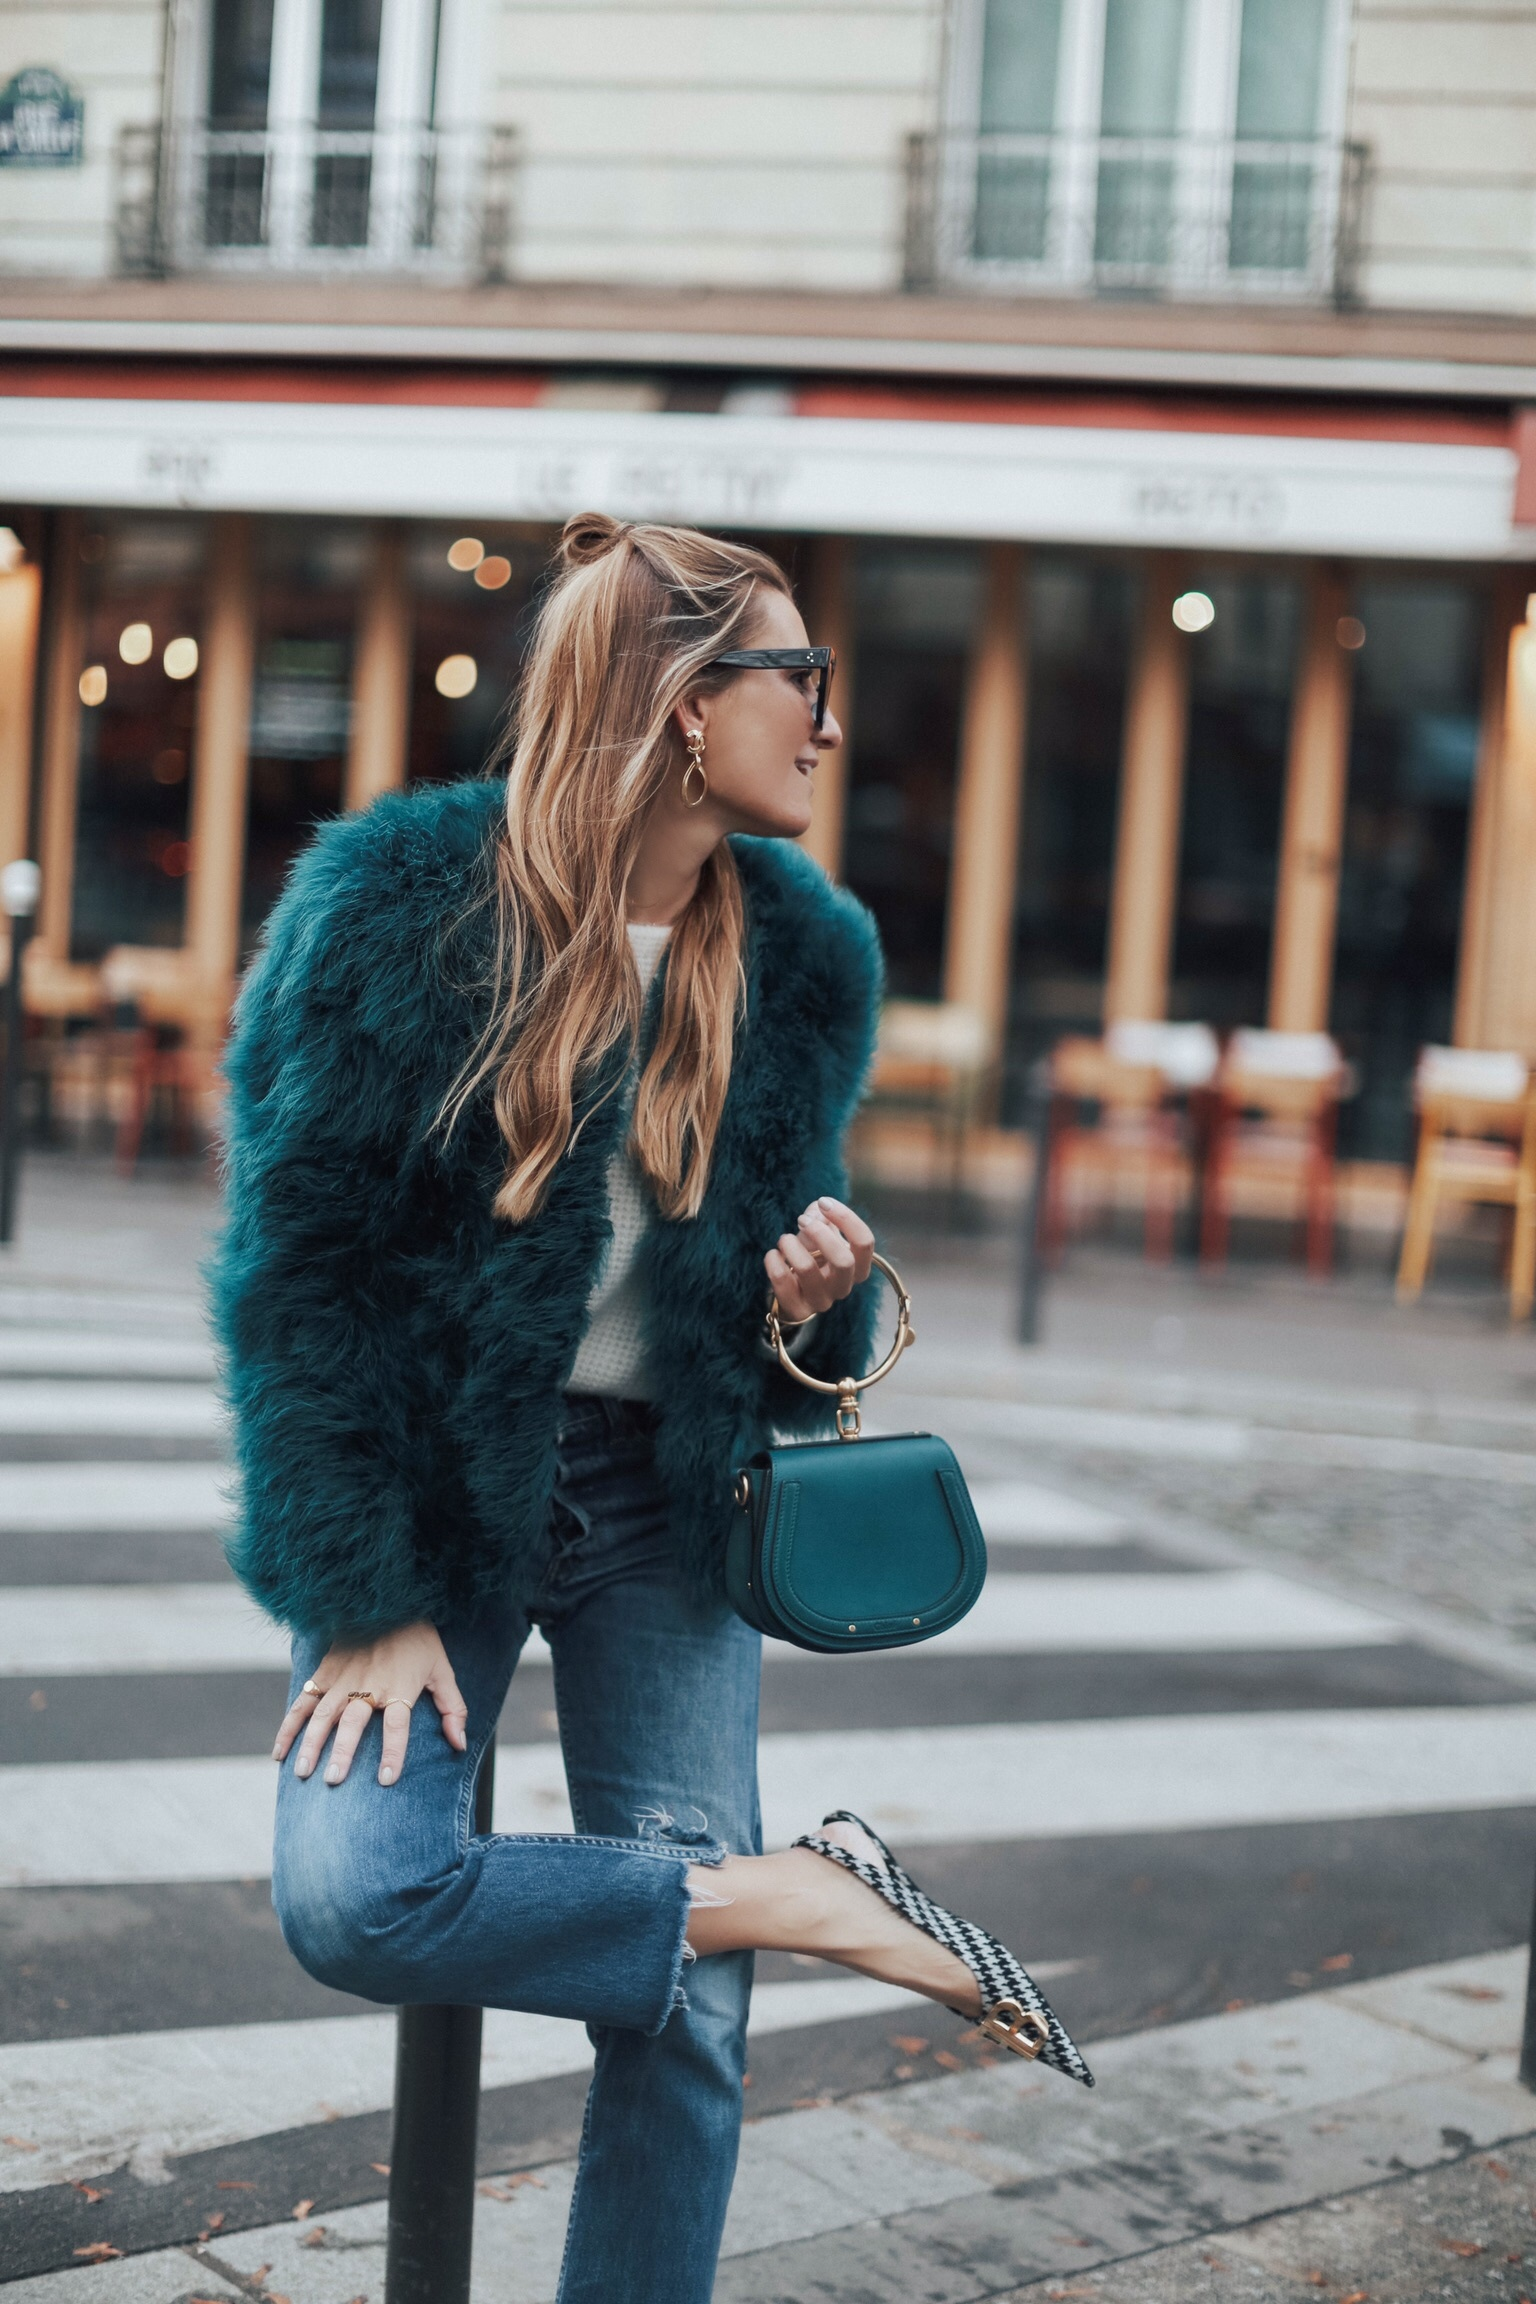 GREEN IS MY COLOR & HI 2019-108664-bartabacmode